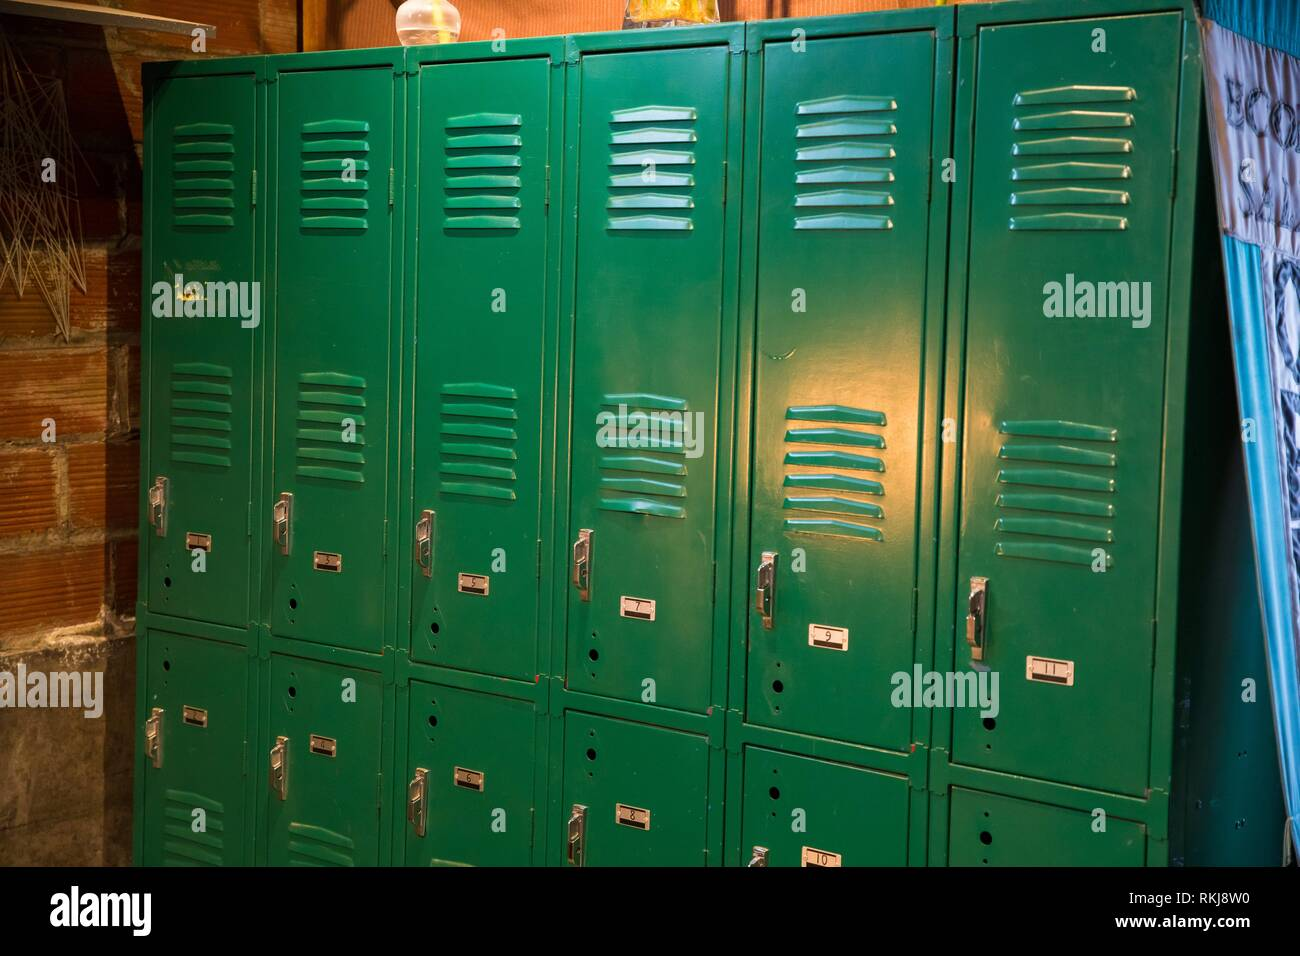 Repurposed green, vintage lockers at a yoga studio in the changing area indoors. - Stock Image